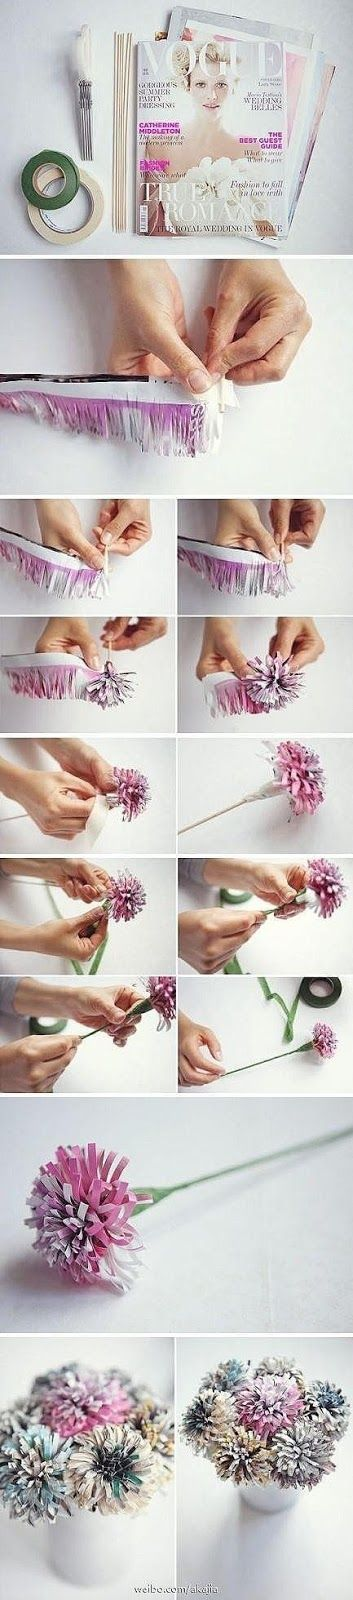 Diy amazing recycled magazines crafts that will inspire you do it diy amazing recycled magazines crafts that will inspire you do it yourself ideas and projects solutioingenieria Gallery